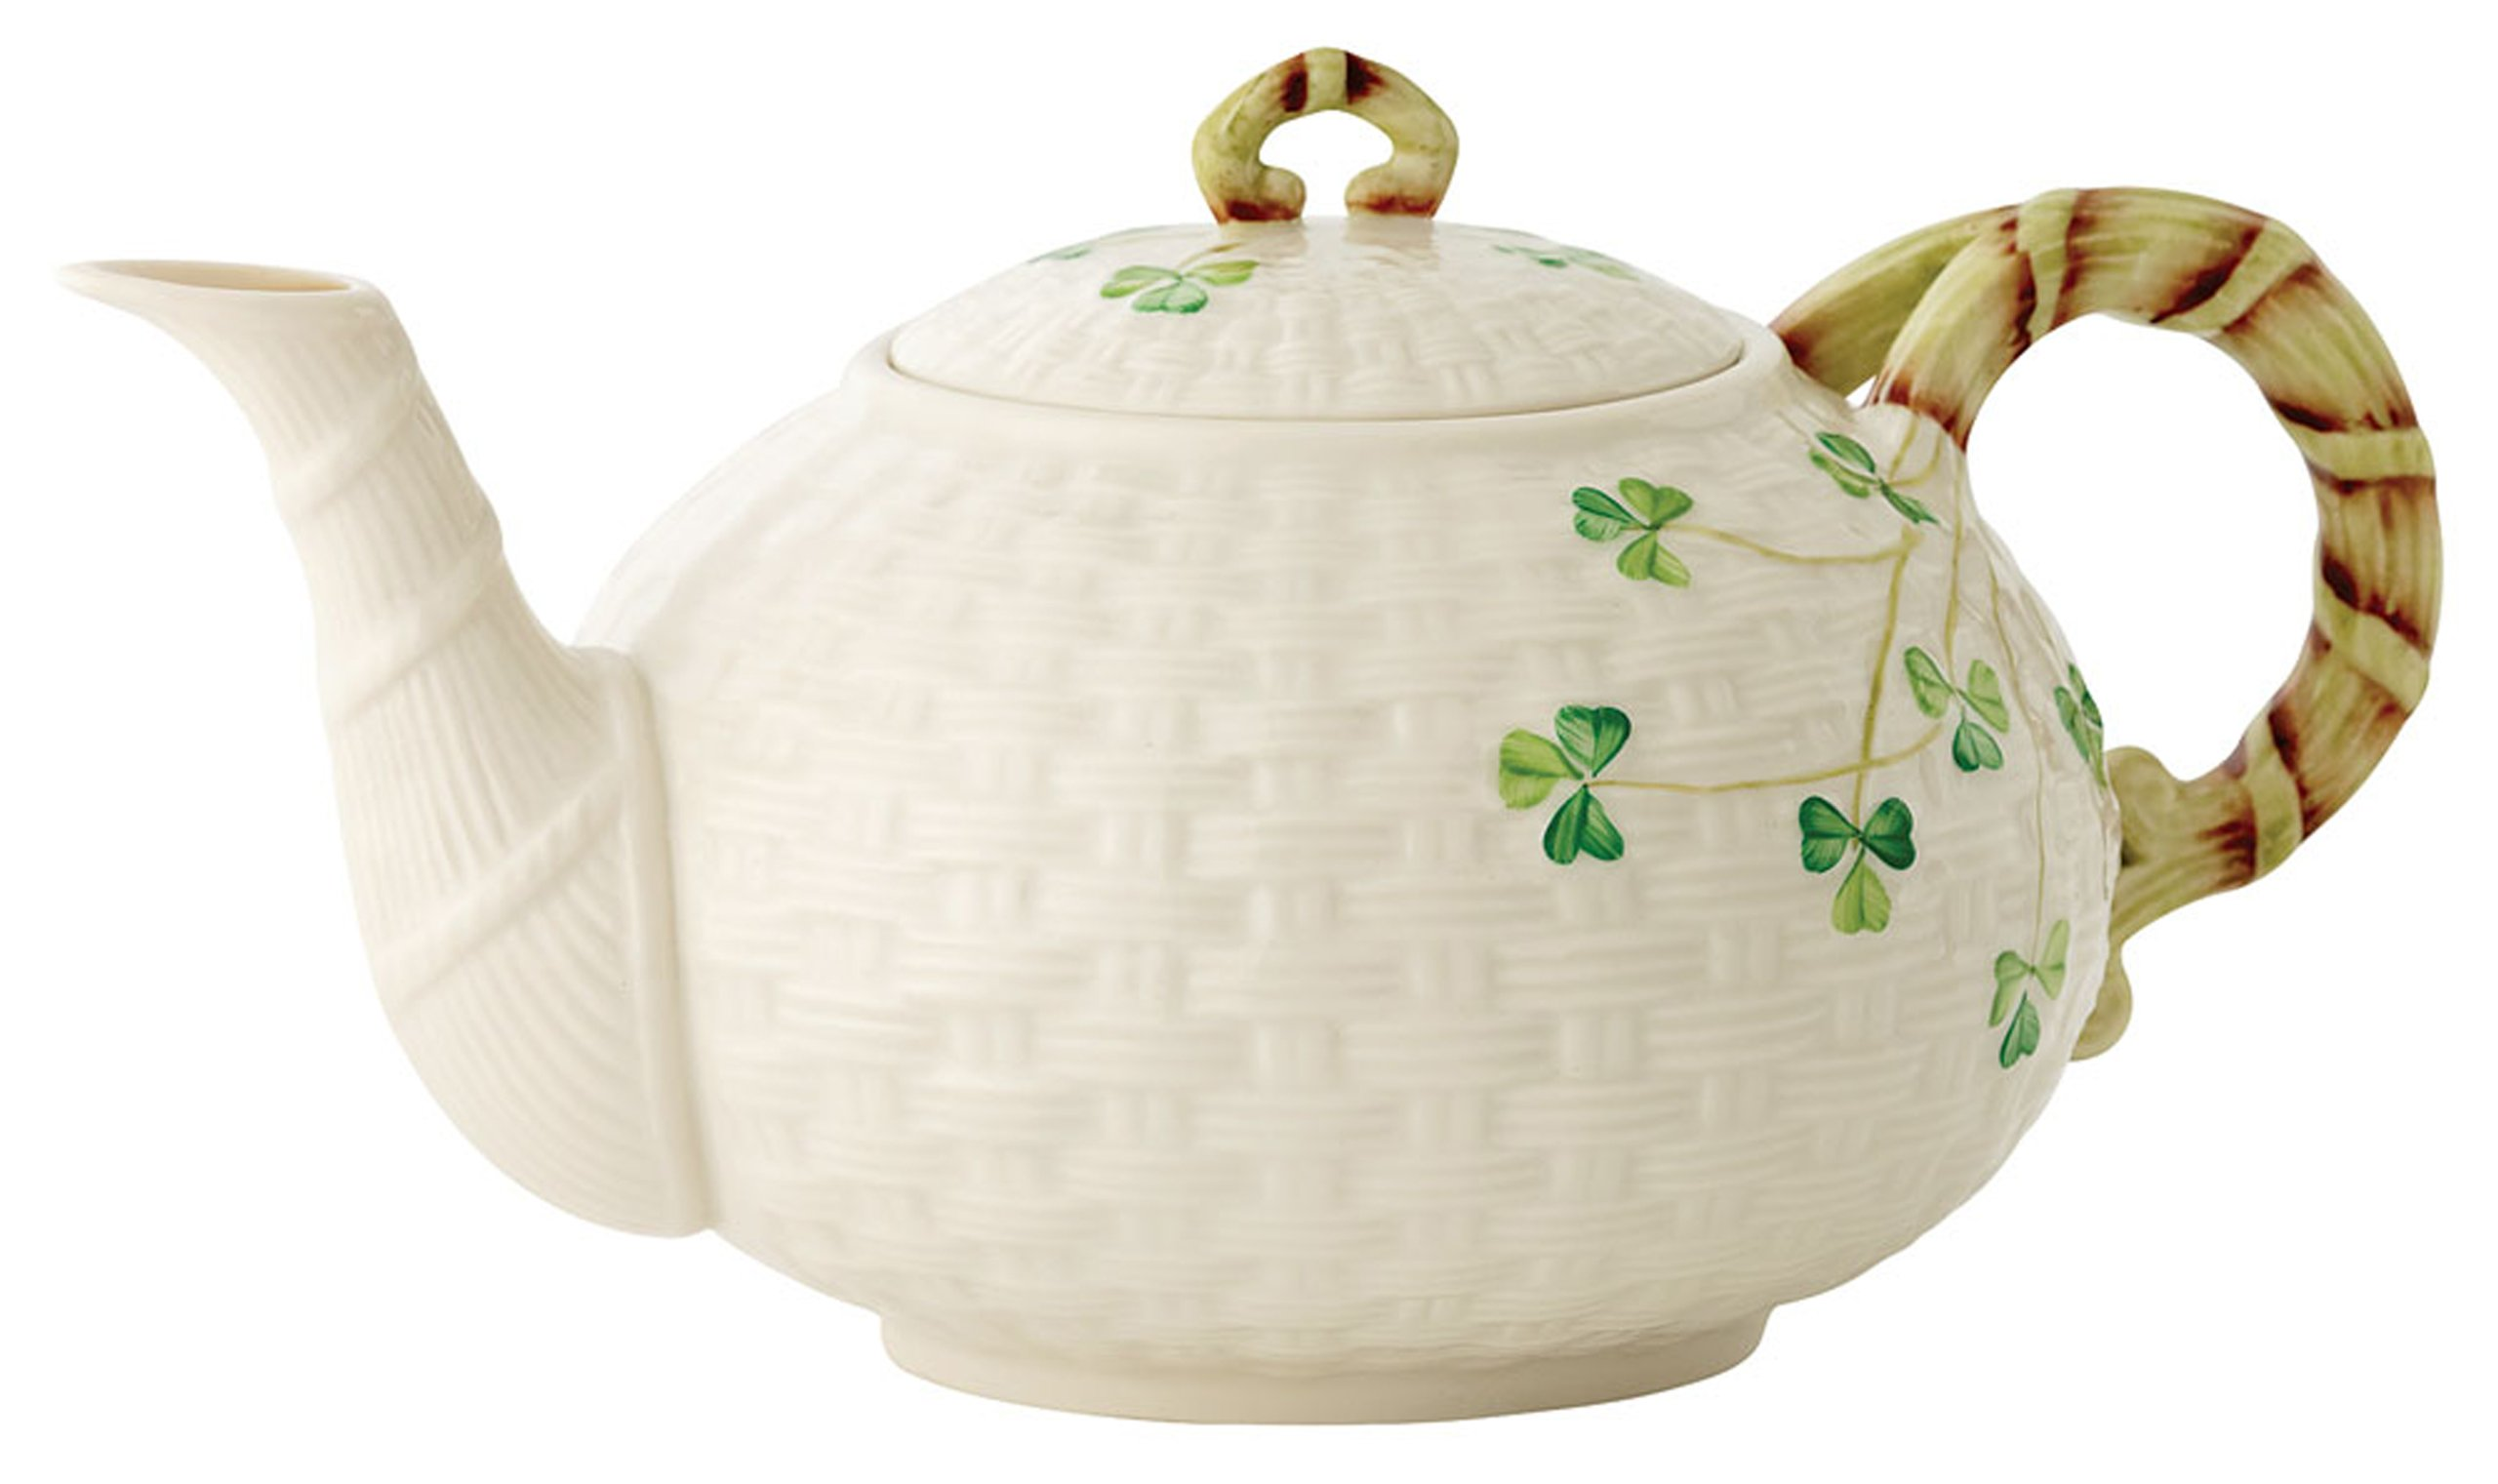 Belleek Group 0016 Shamrock Teapot, 35 Fluid Ounce, White by Belleek Group